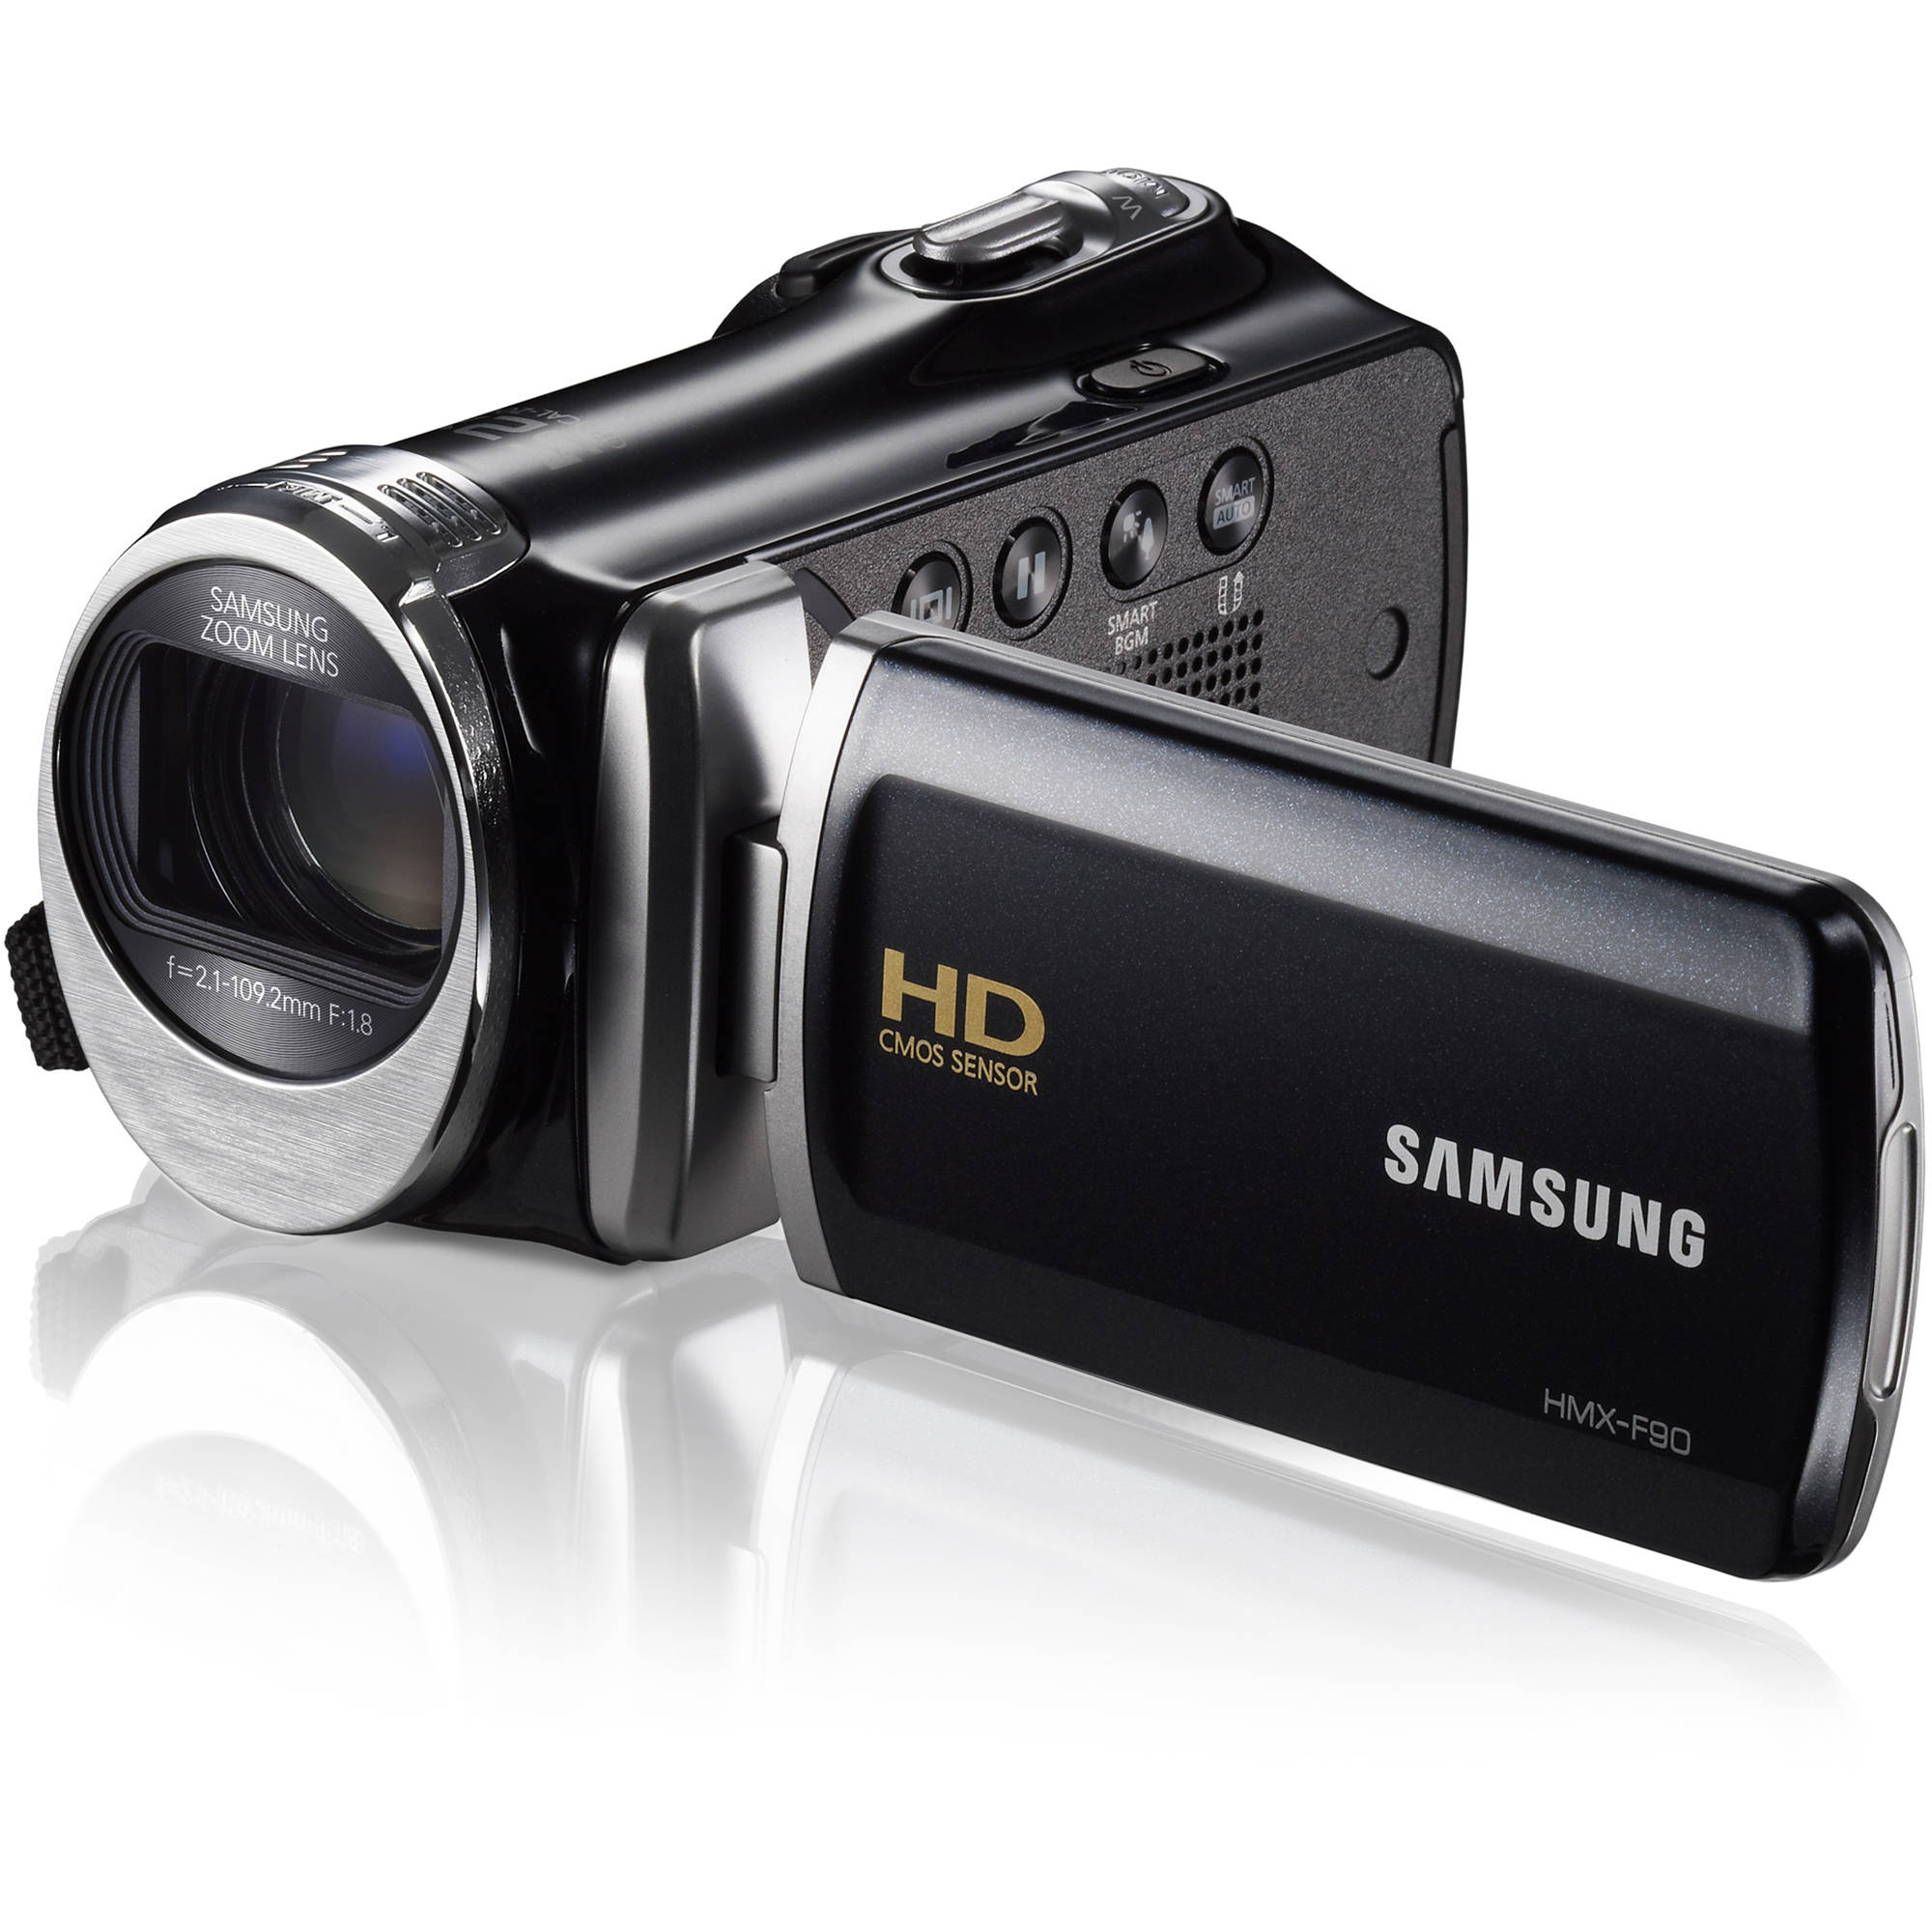 Samsung hmx f90 video cameras research guides at stetson university video camera instructions samsung hmx sciox Choice Image